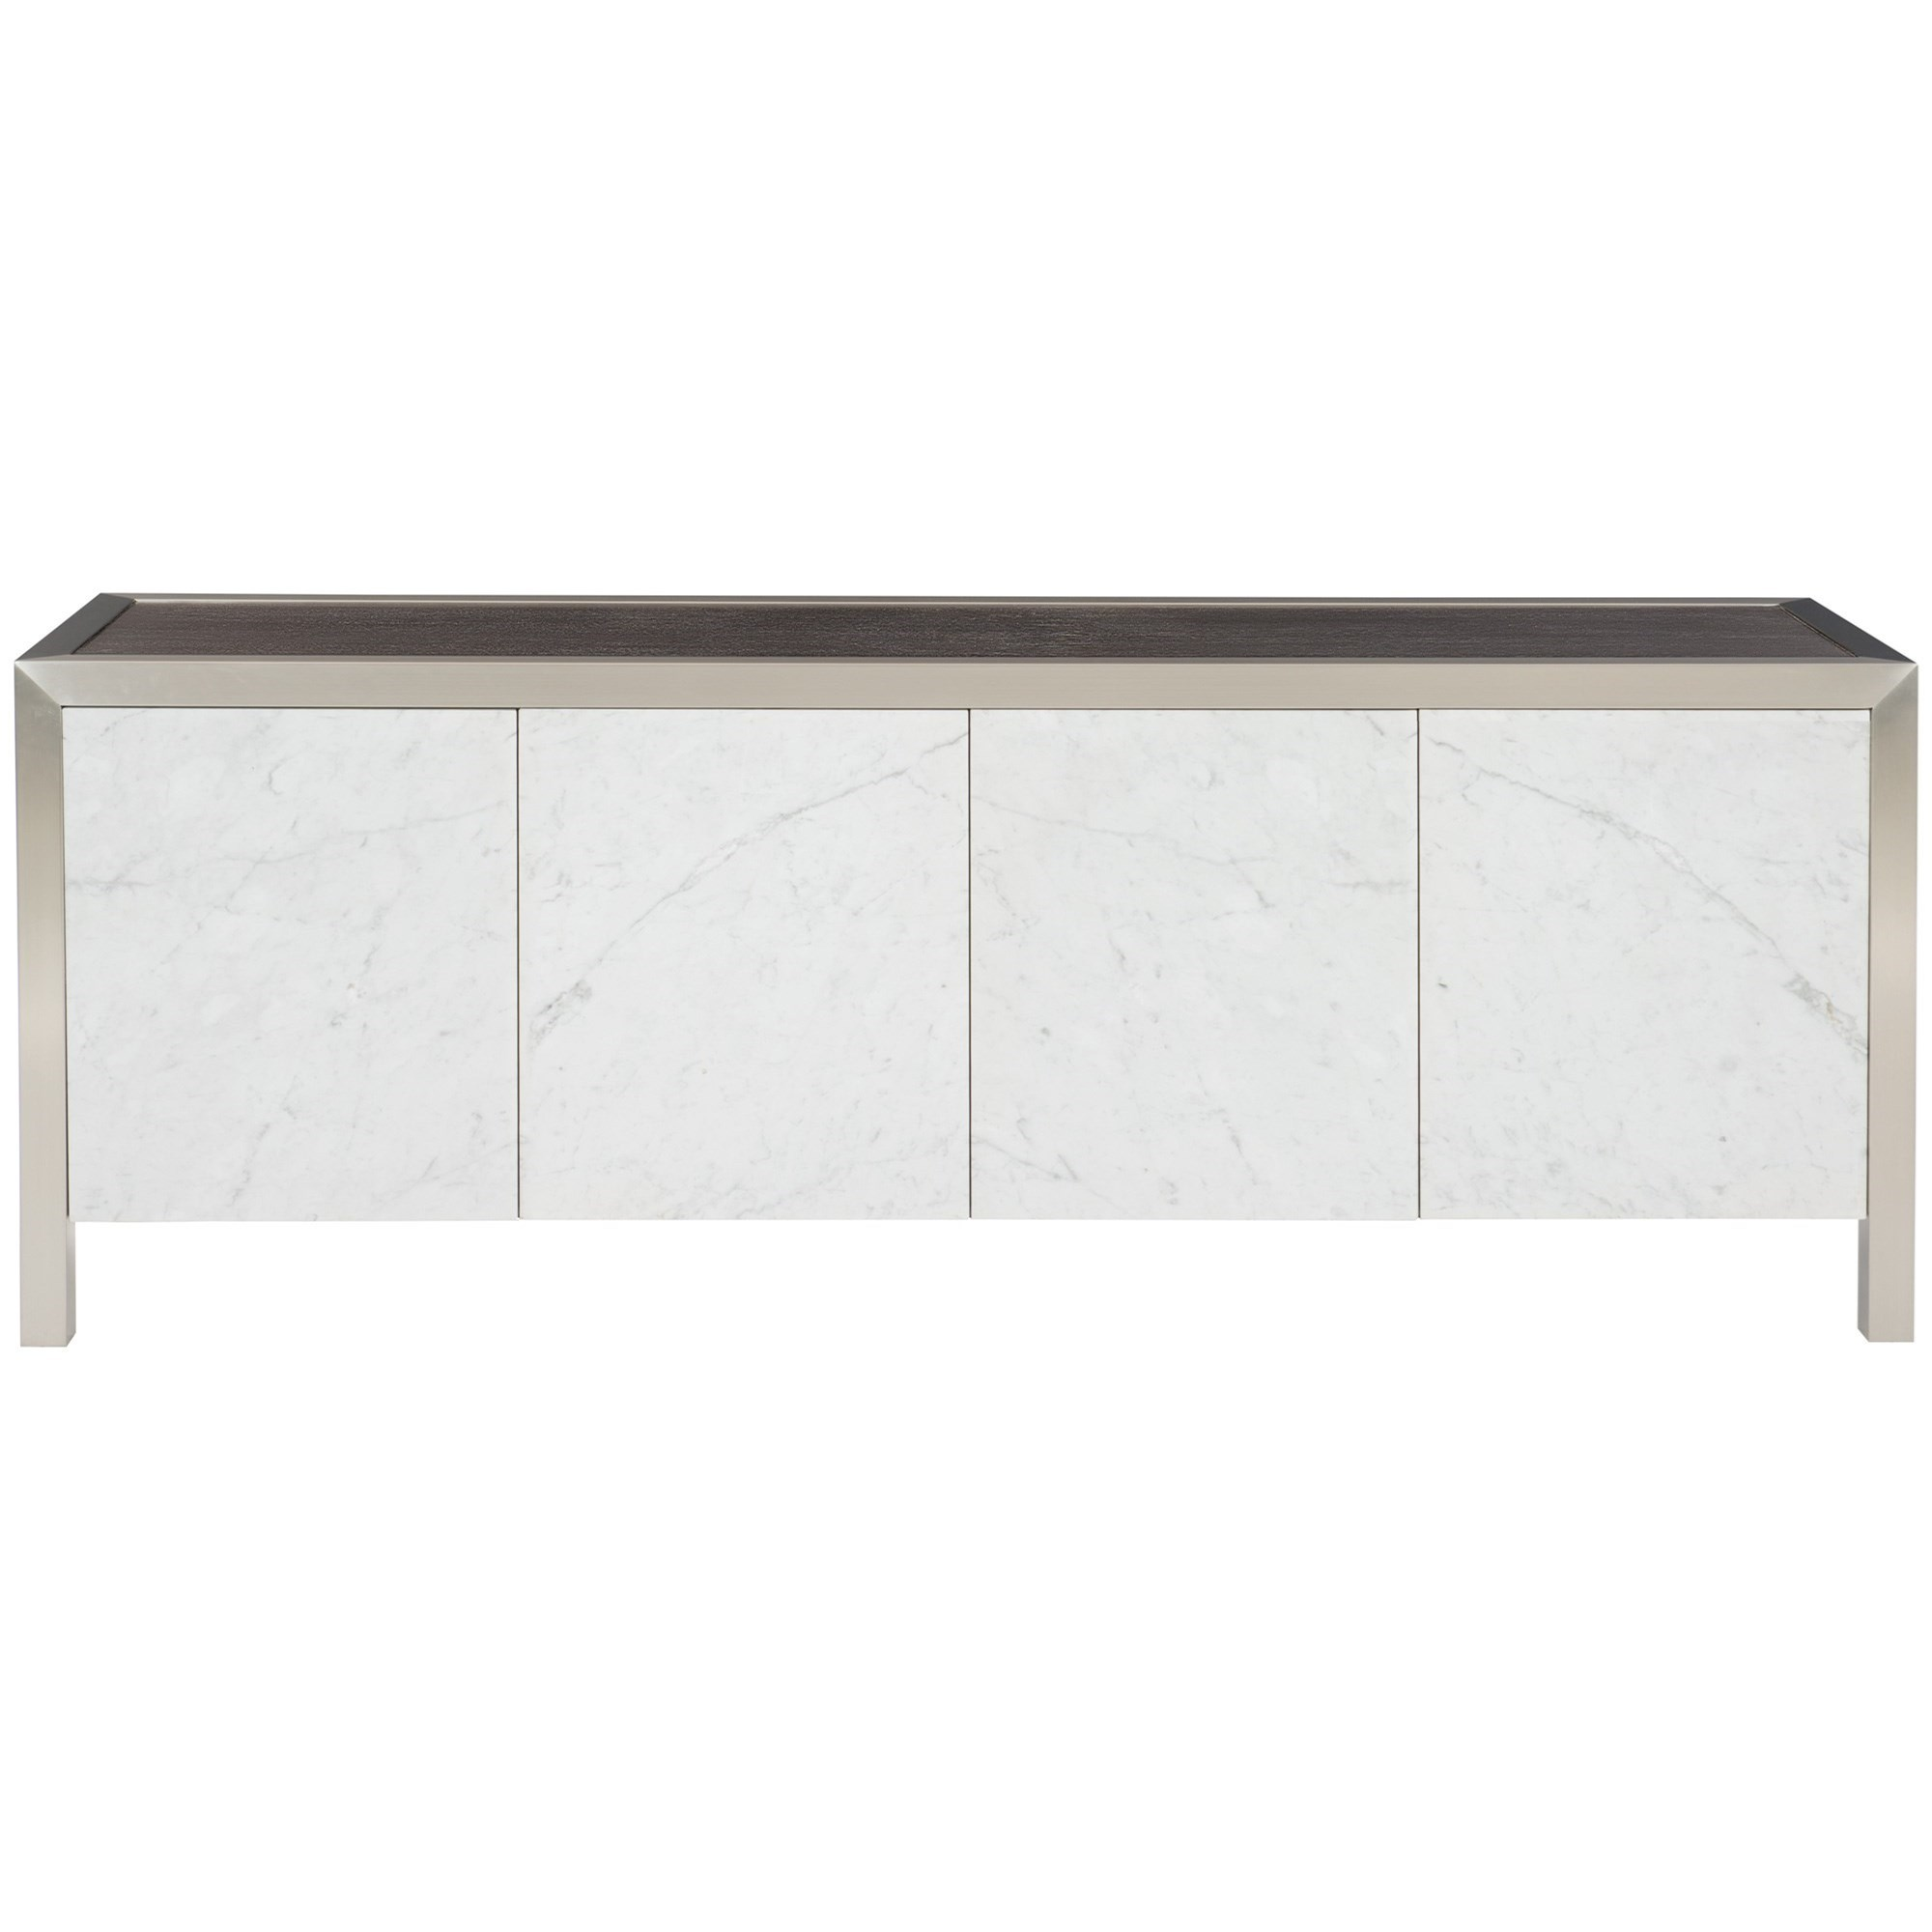 Decorage Entertainment Console at Williams & Kay